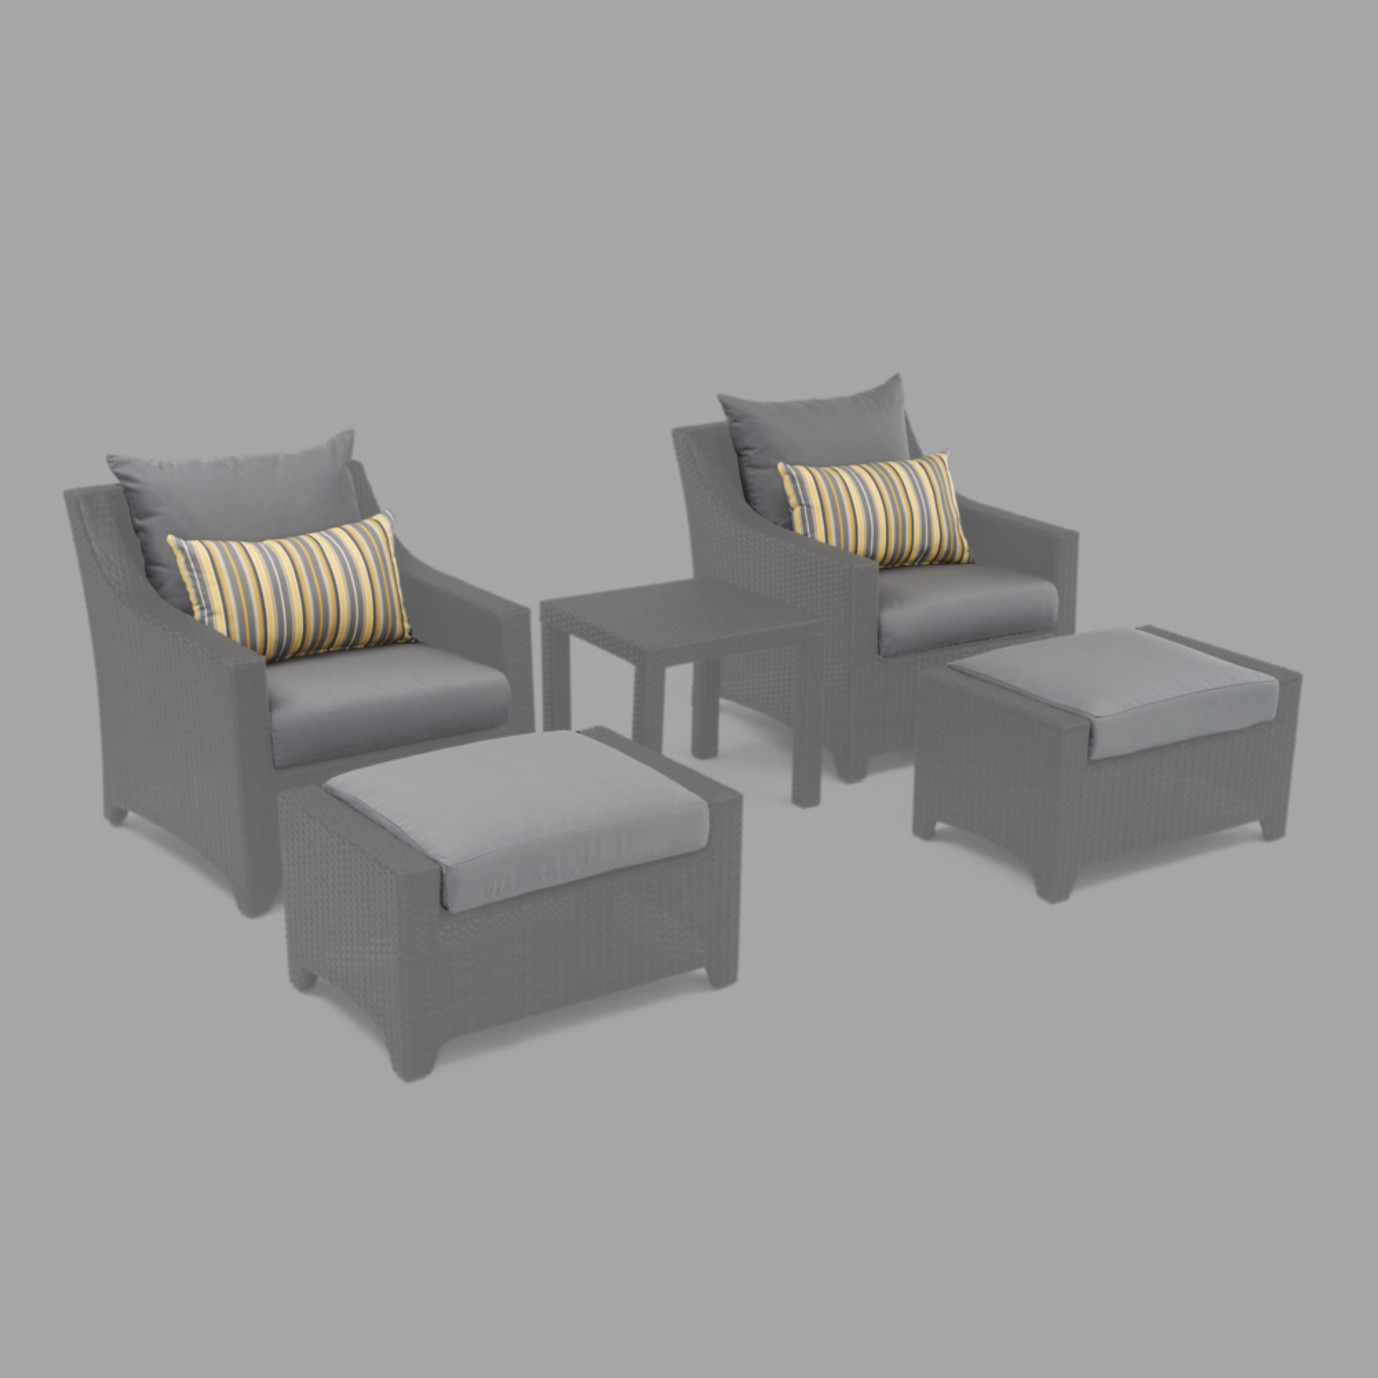 Modular Outdoor 5pc Club Cushion Cover Set - Charcoal Grey